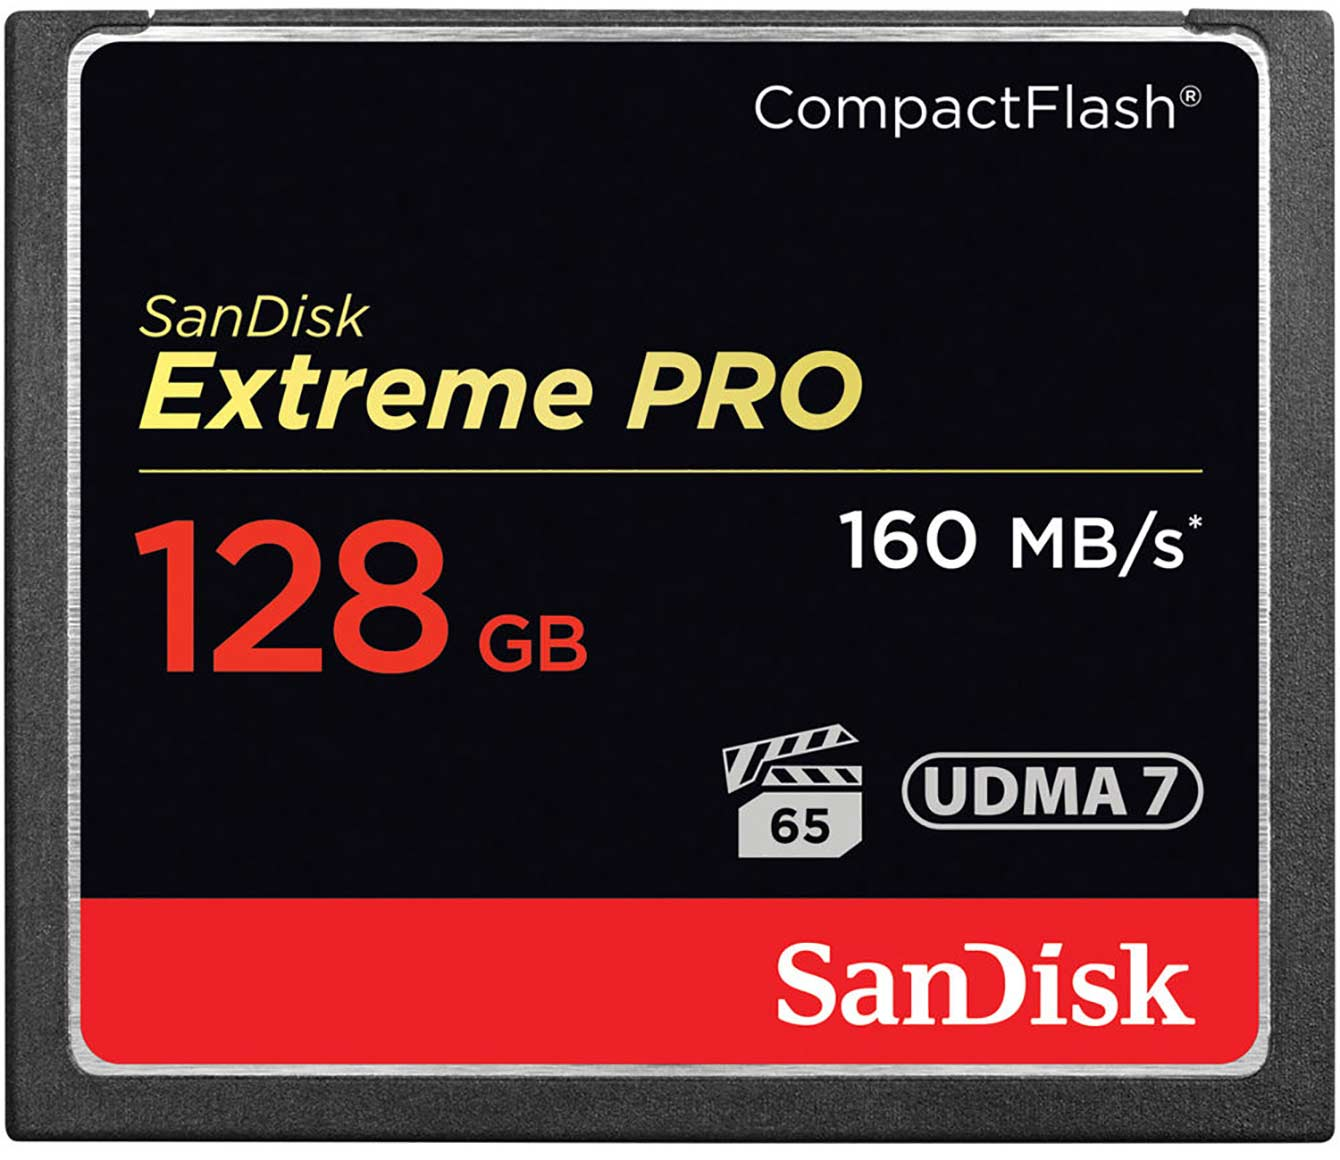 The Extreme Pro 128 GB Compact Flash Card